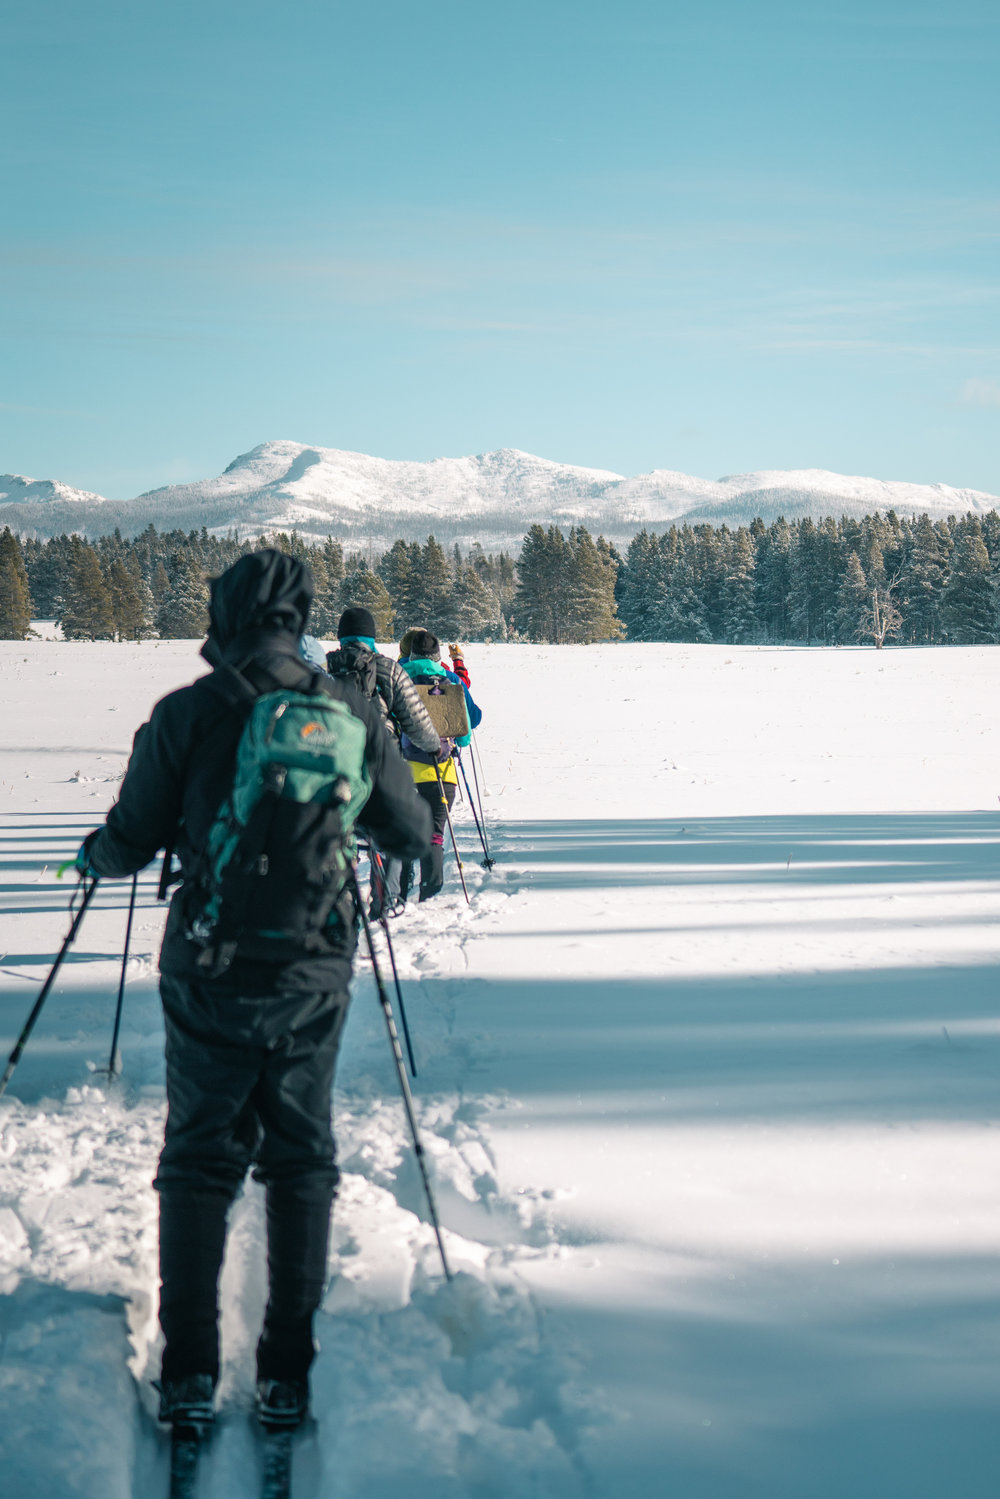 Cross country skiing through the Pelican Valley of Yellowstone National Park.